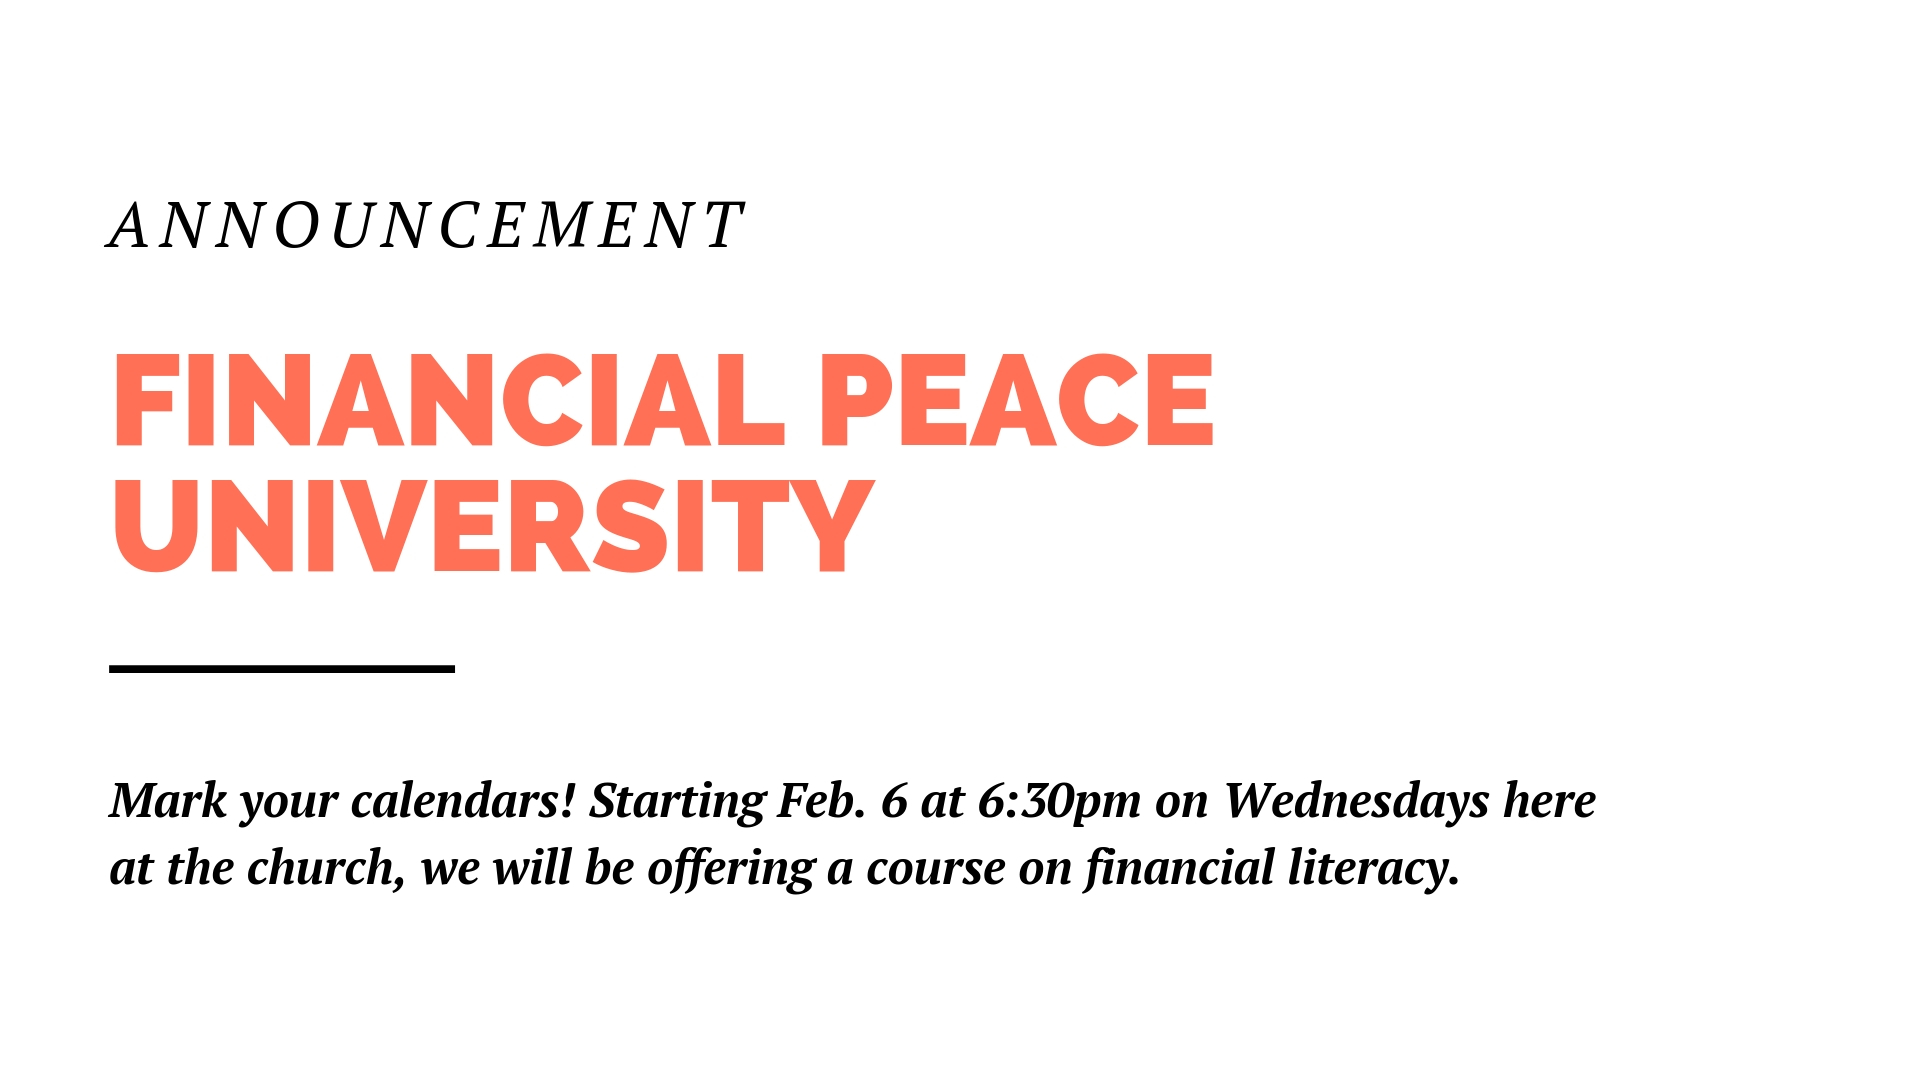 Mark your calendars, starting Feb. 6 on Wednesday nights at 6:30pm, we'll be offering a class on financial literacy here at the church. Nathan Gomez is the contact for more information at  nathan@lowresagency.com .